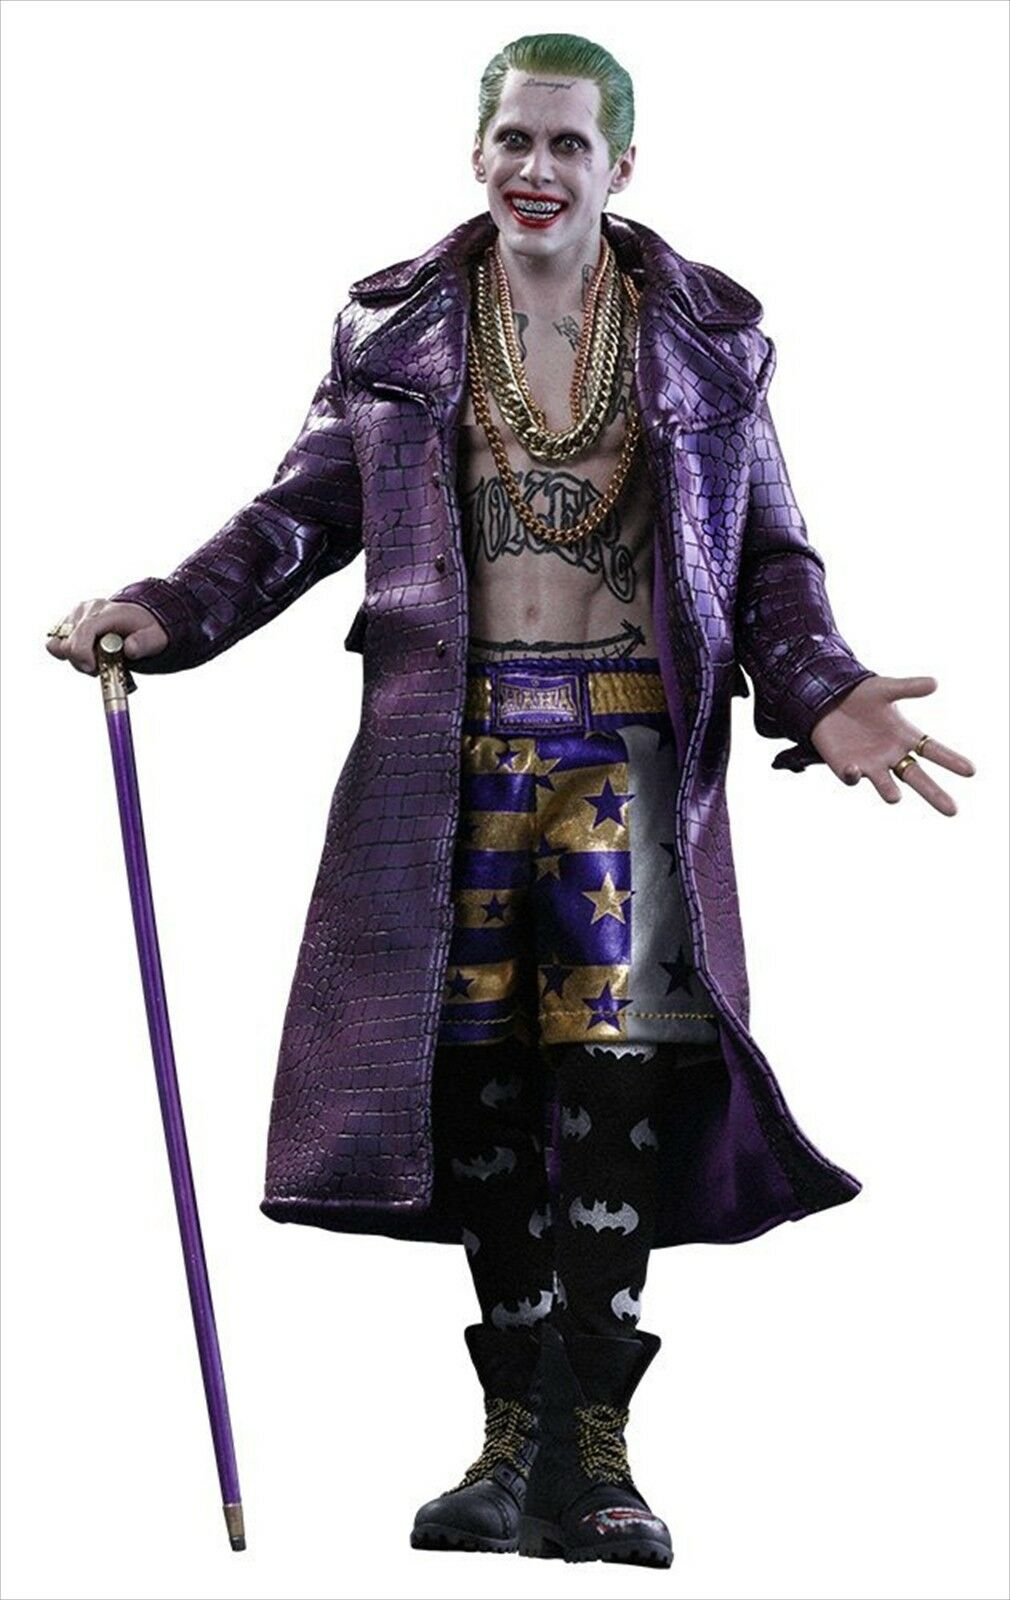 Movie Masterpiece Suicide Squad Joker viola  coat version 1 6 scale cifra nuovo  80% di sconto